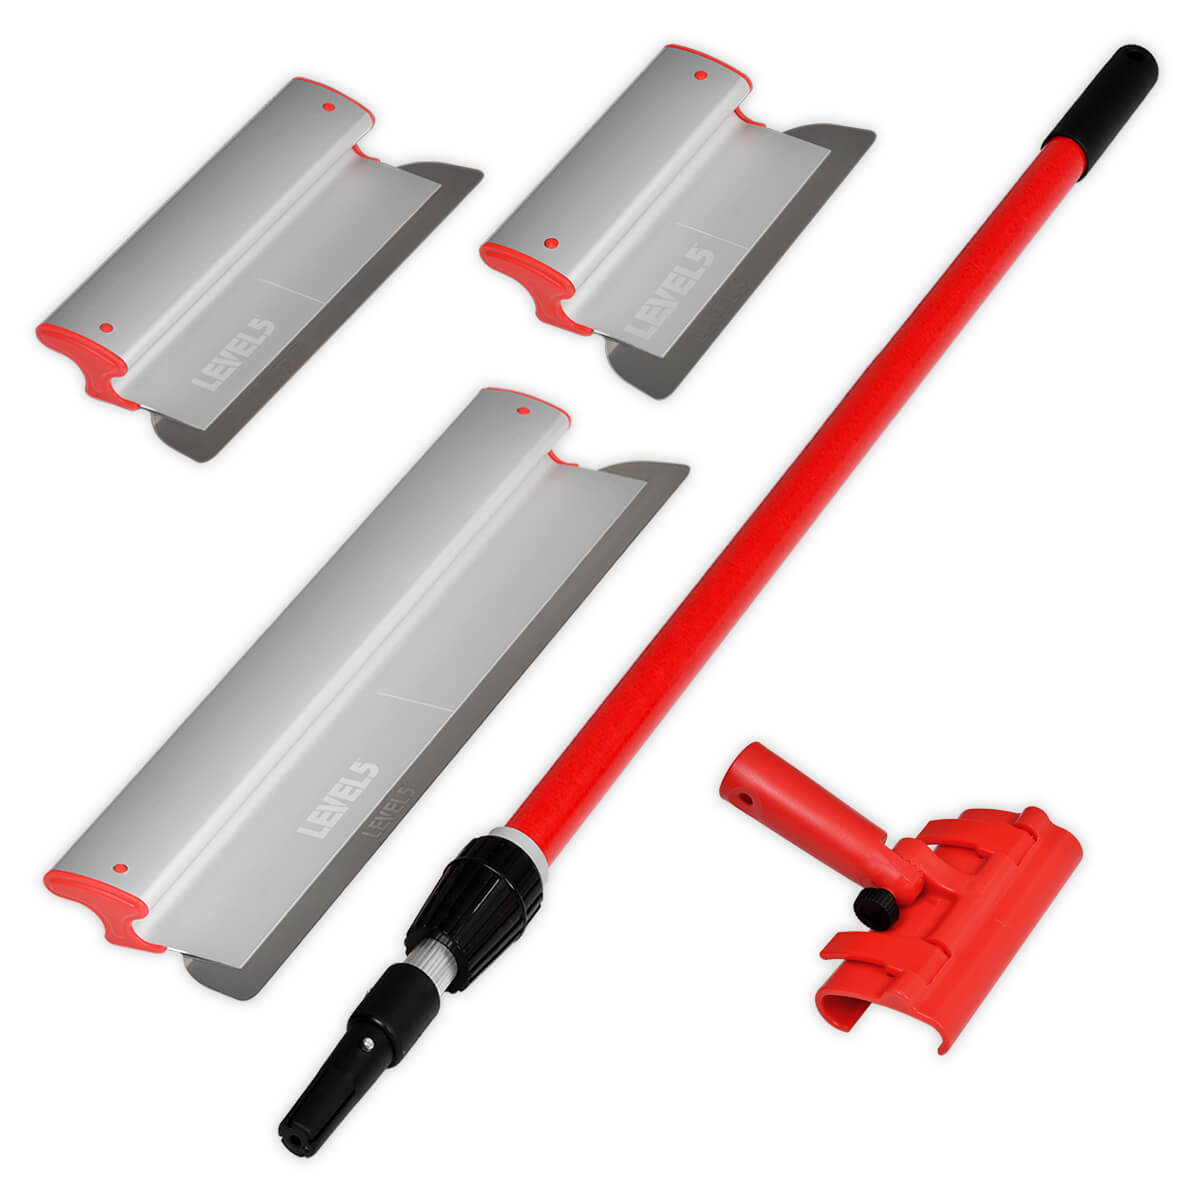 L5 10/16/24 Inch Skimming Blade Set with Med. Handle & Adapter | 5-440